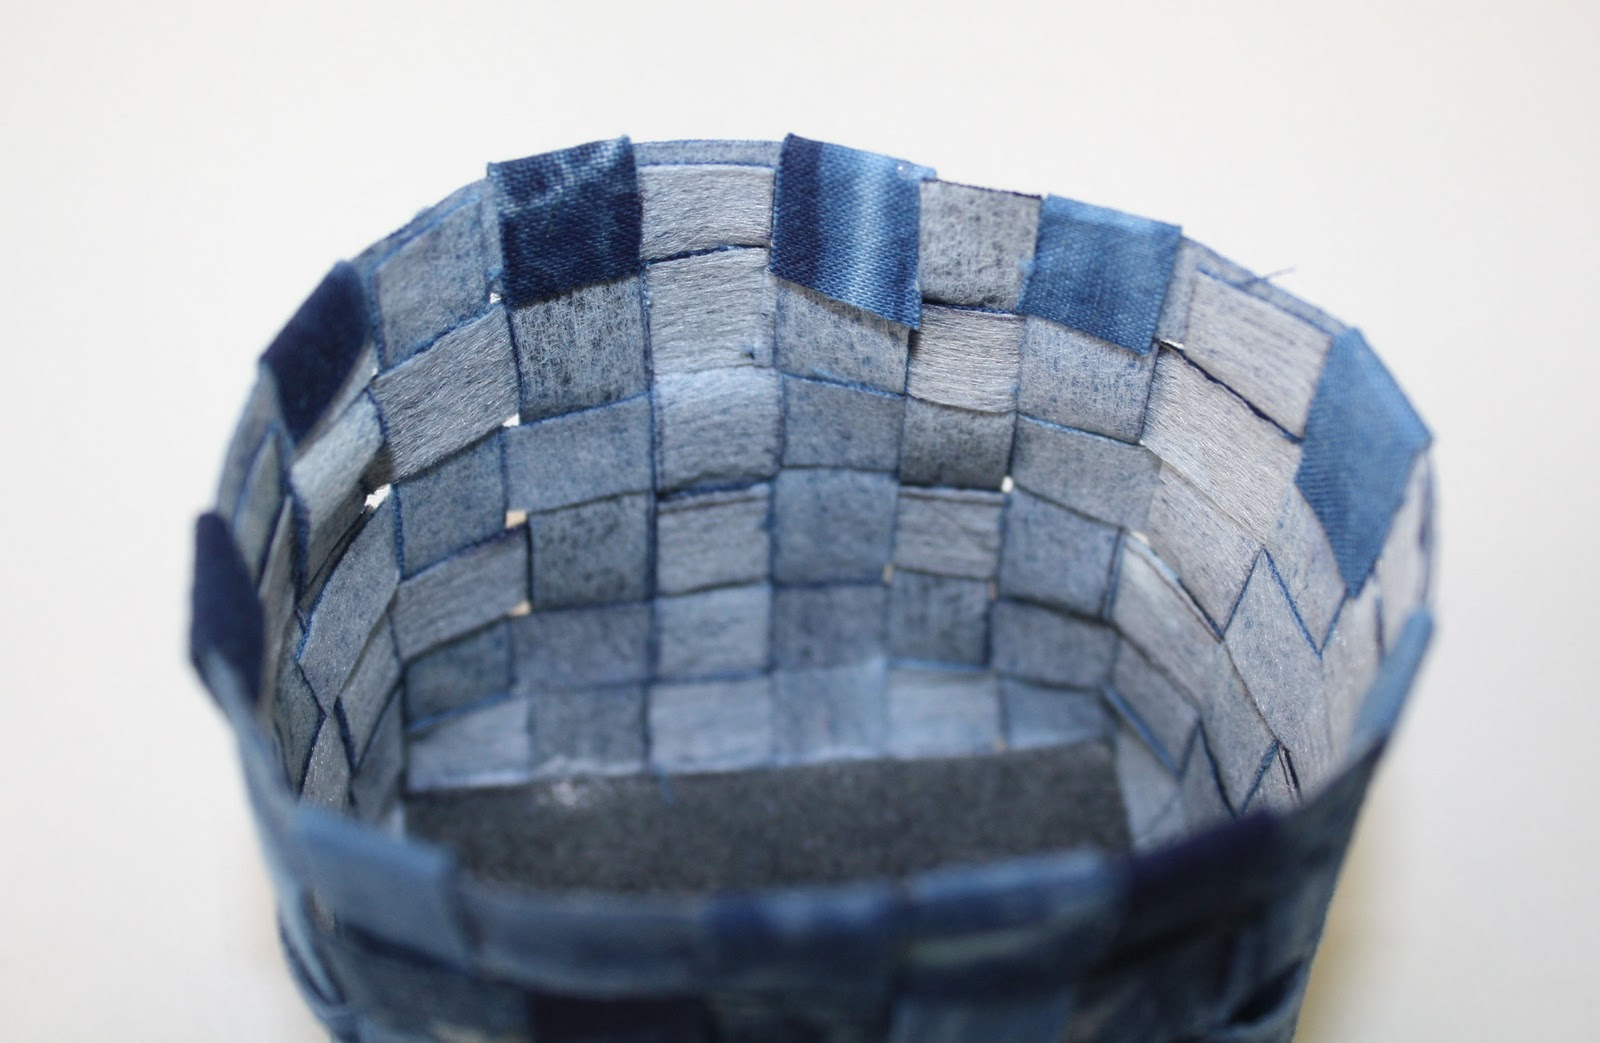 sarah bell smith: Woven Fabric Basket